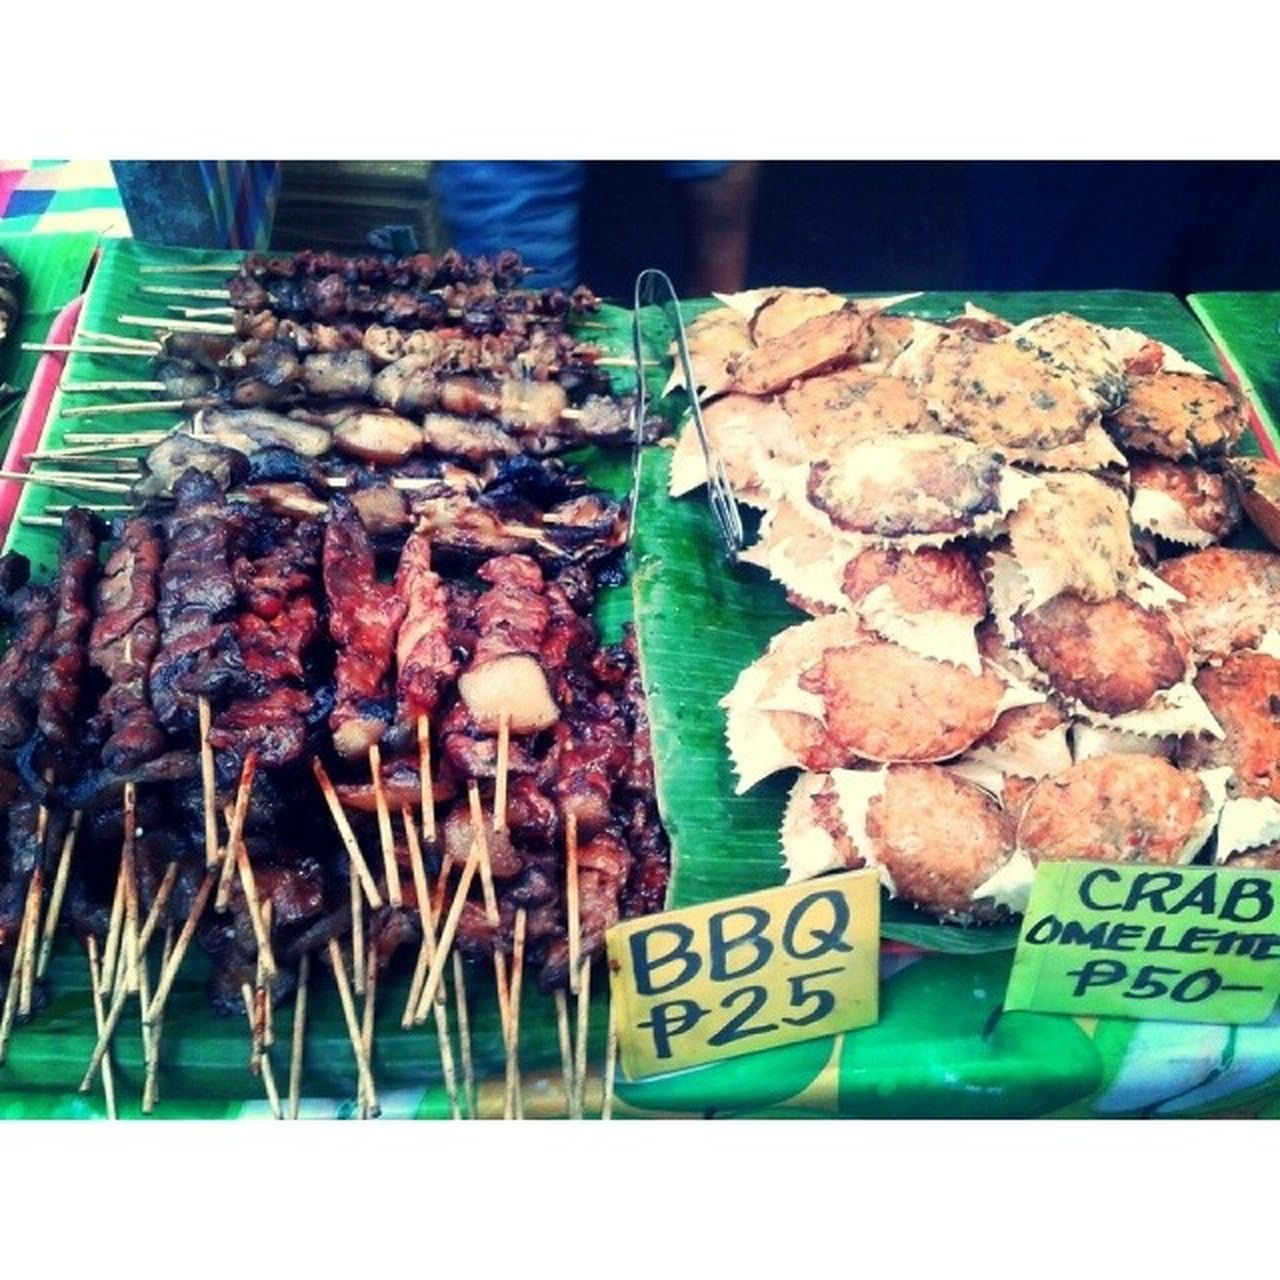 Pork barbecue and crab omelet on the half-shell (my favourite!) Banchetto Pork Barbecue Crab omelet omelette pinoyfood streetfood pagkaingpinoy itsmorefuninthephilippines quezoncity sundaydinner sundays